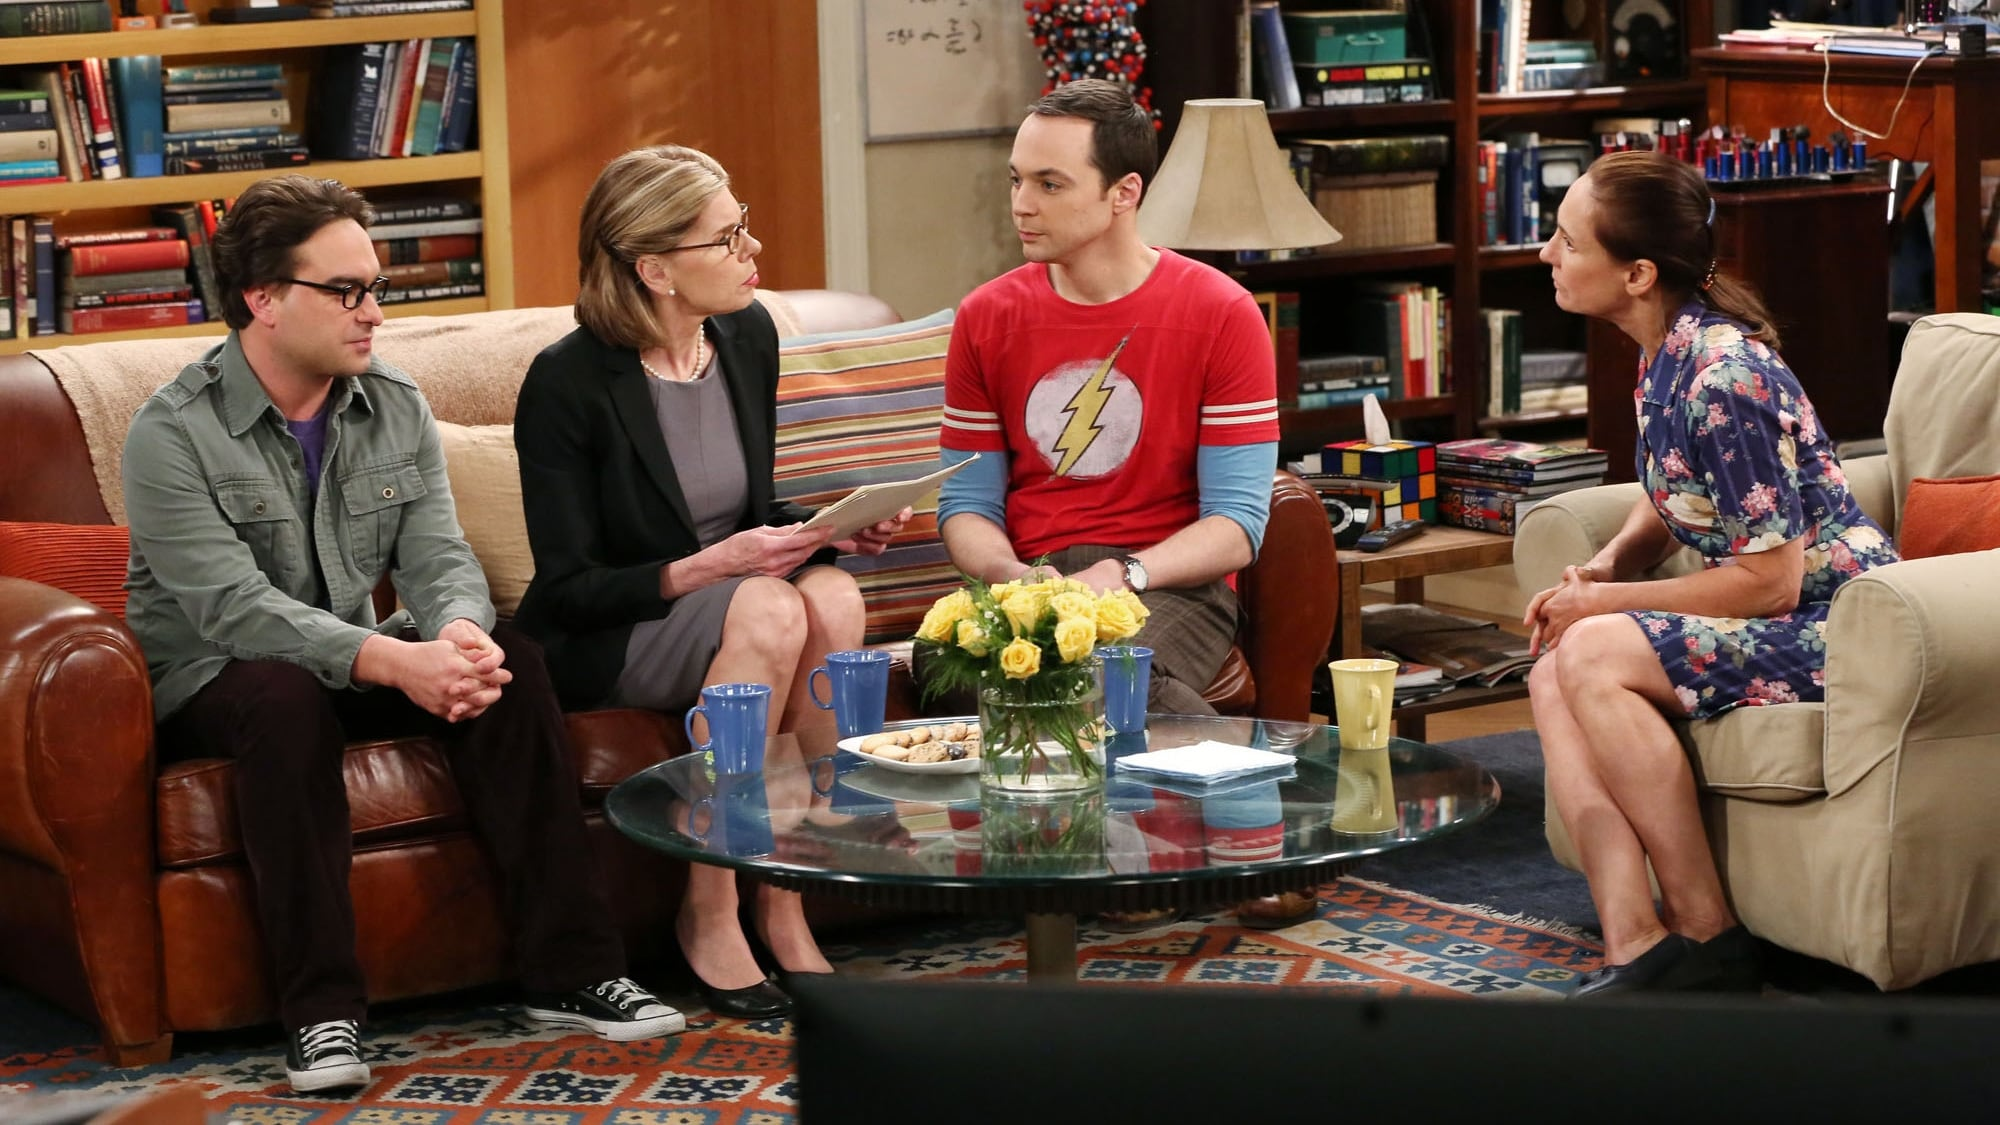 The Big Bang Theory - Season 8 Episode 23 : The Maternal Combustion